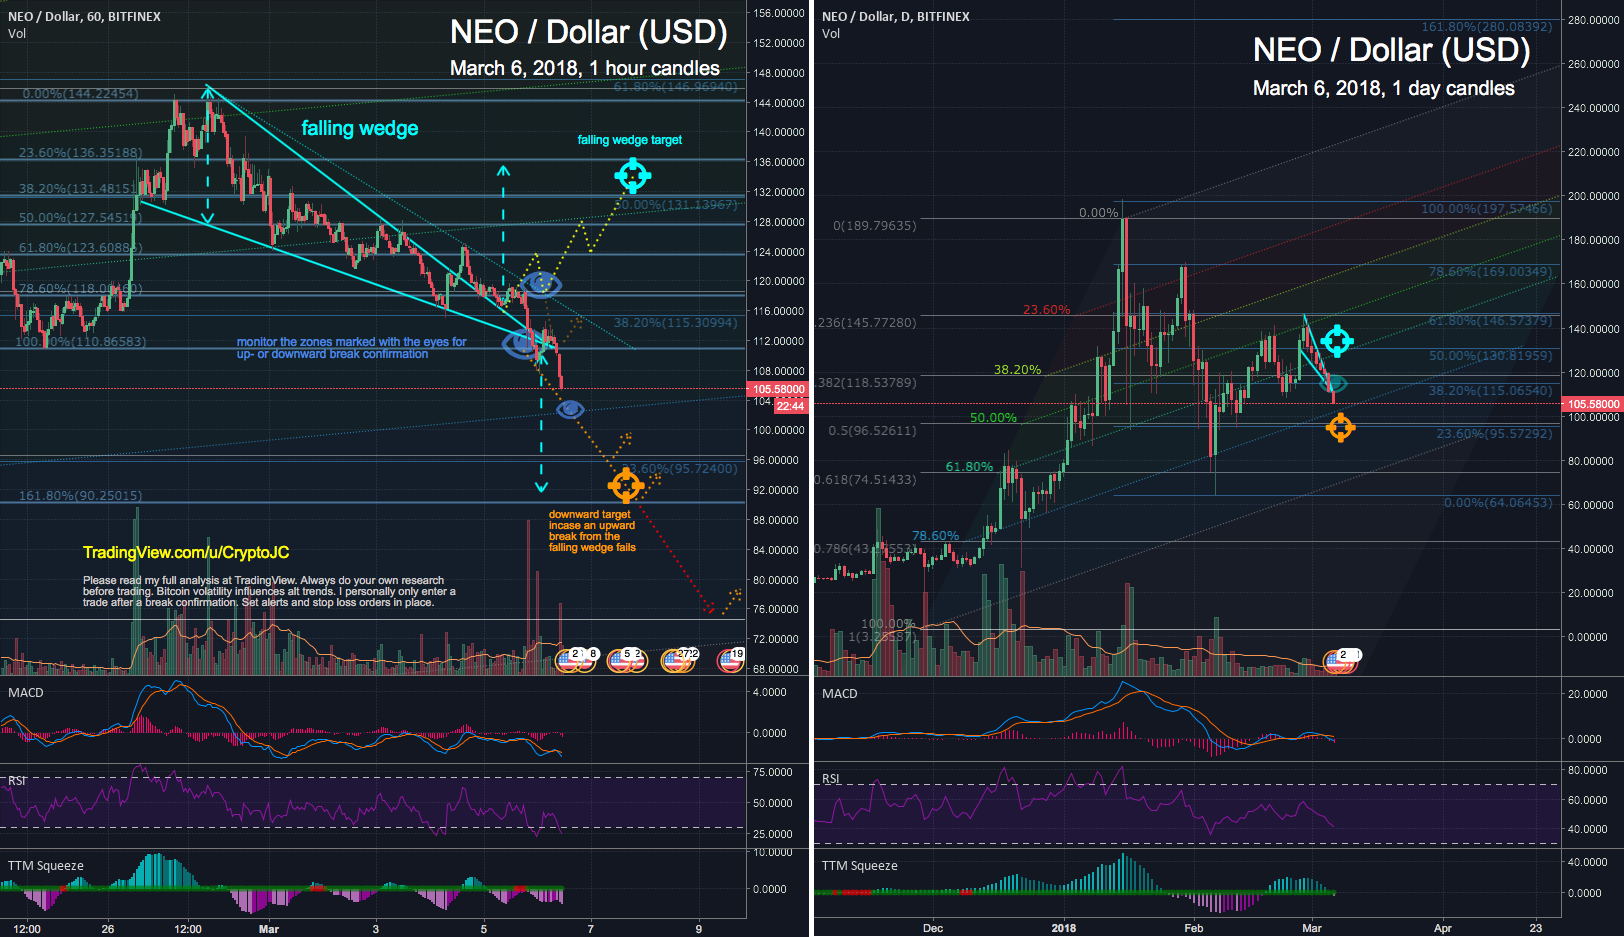 NEO USD broke down from the Falling Wedge